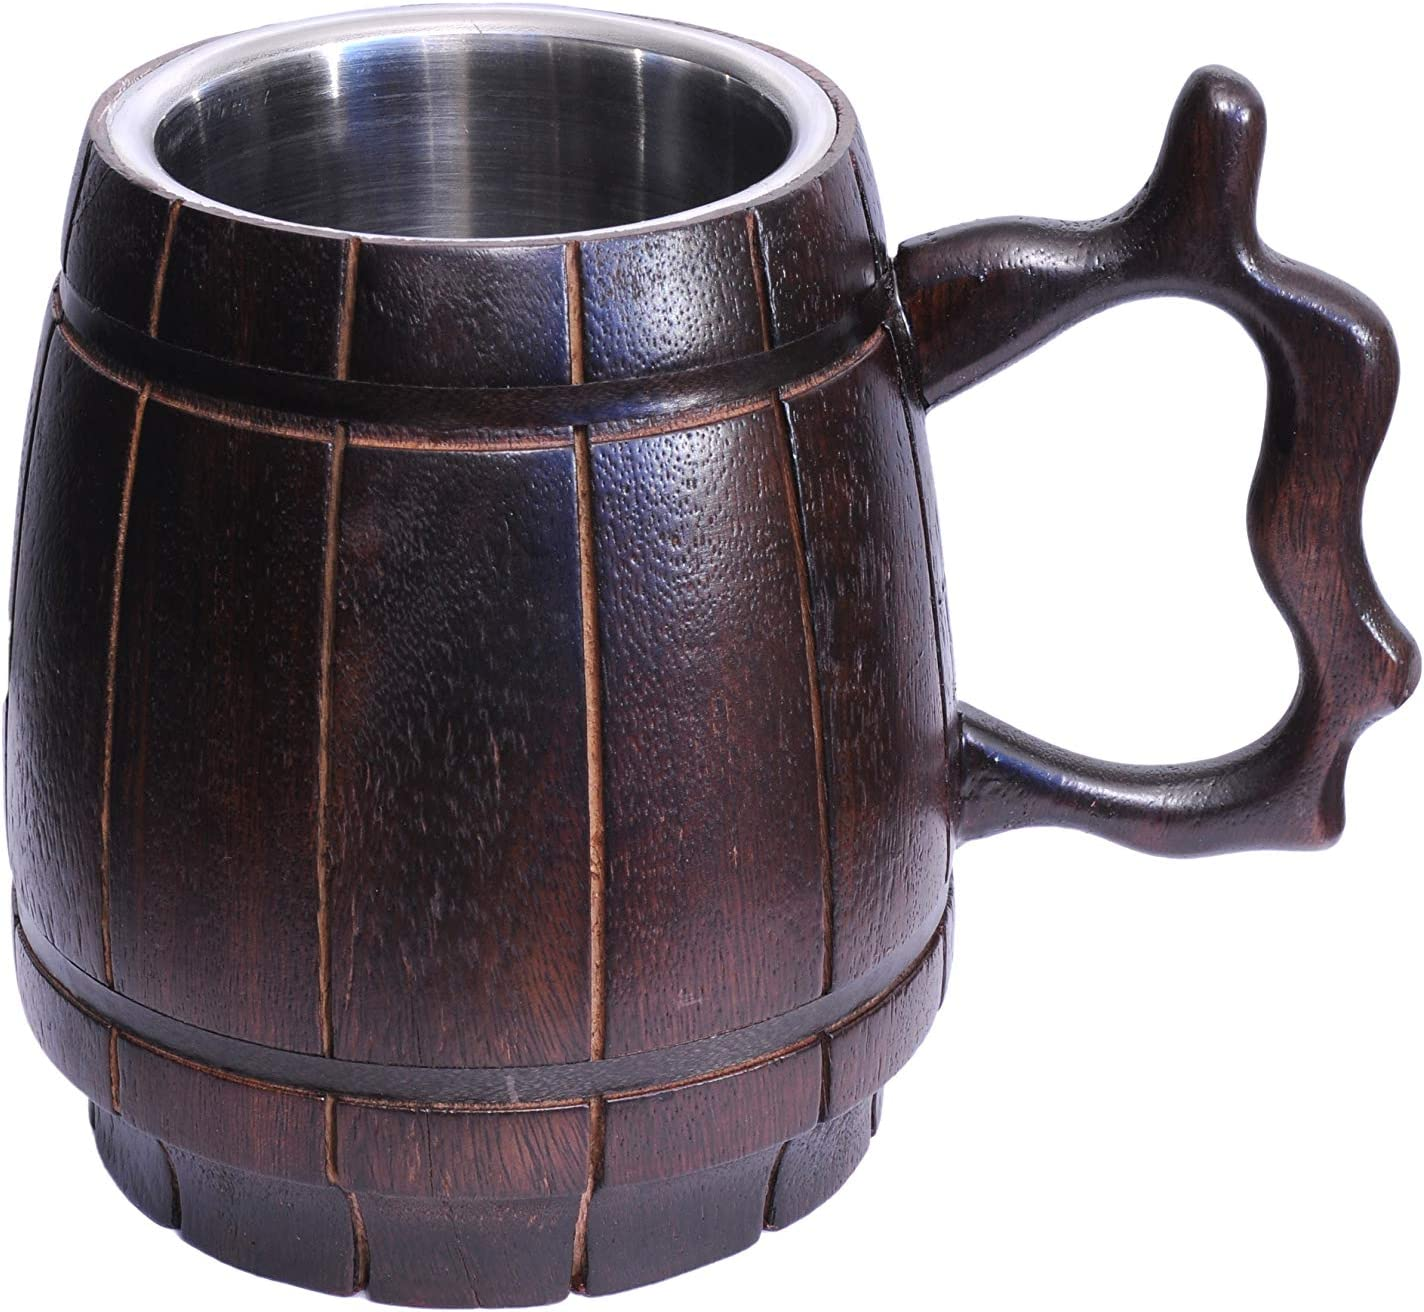 Frescorr - Handmade Beer Mug (550ml, 18oz) ,Wood and Stainless Steel Cup Natural Eco-Friendly Barrel Brown, Beer Tankard - Natural wood and stainless steel Beer Mug